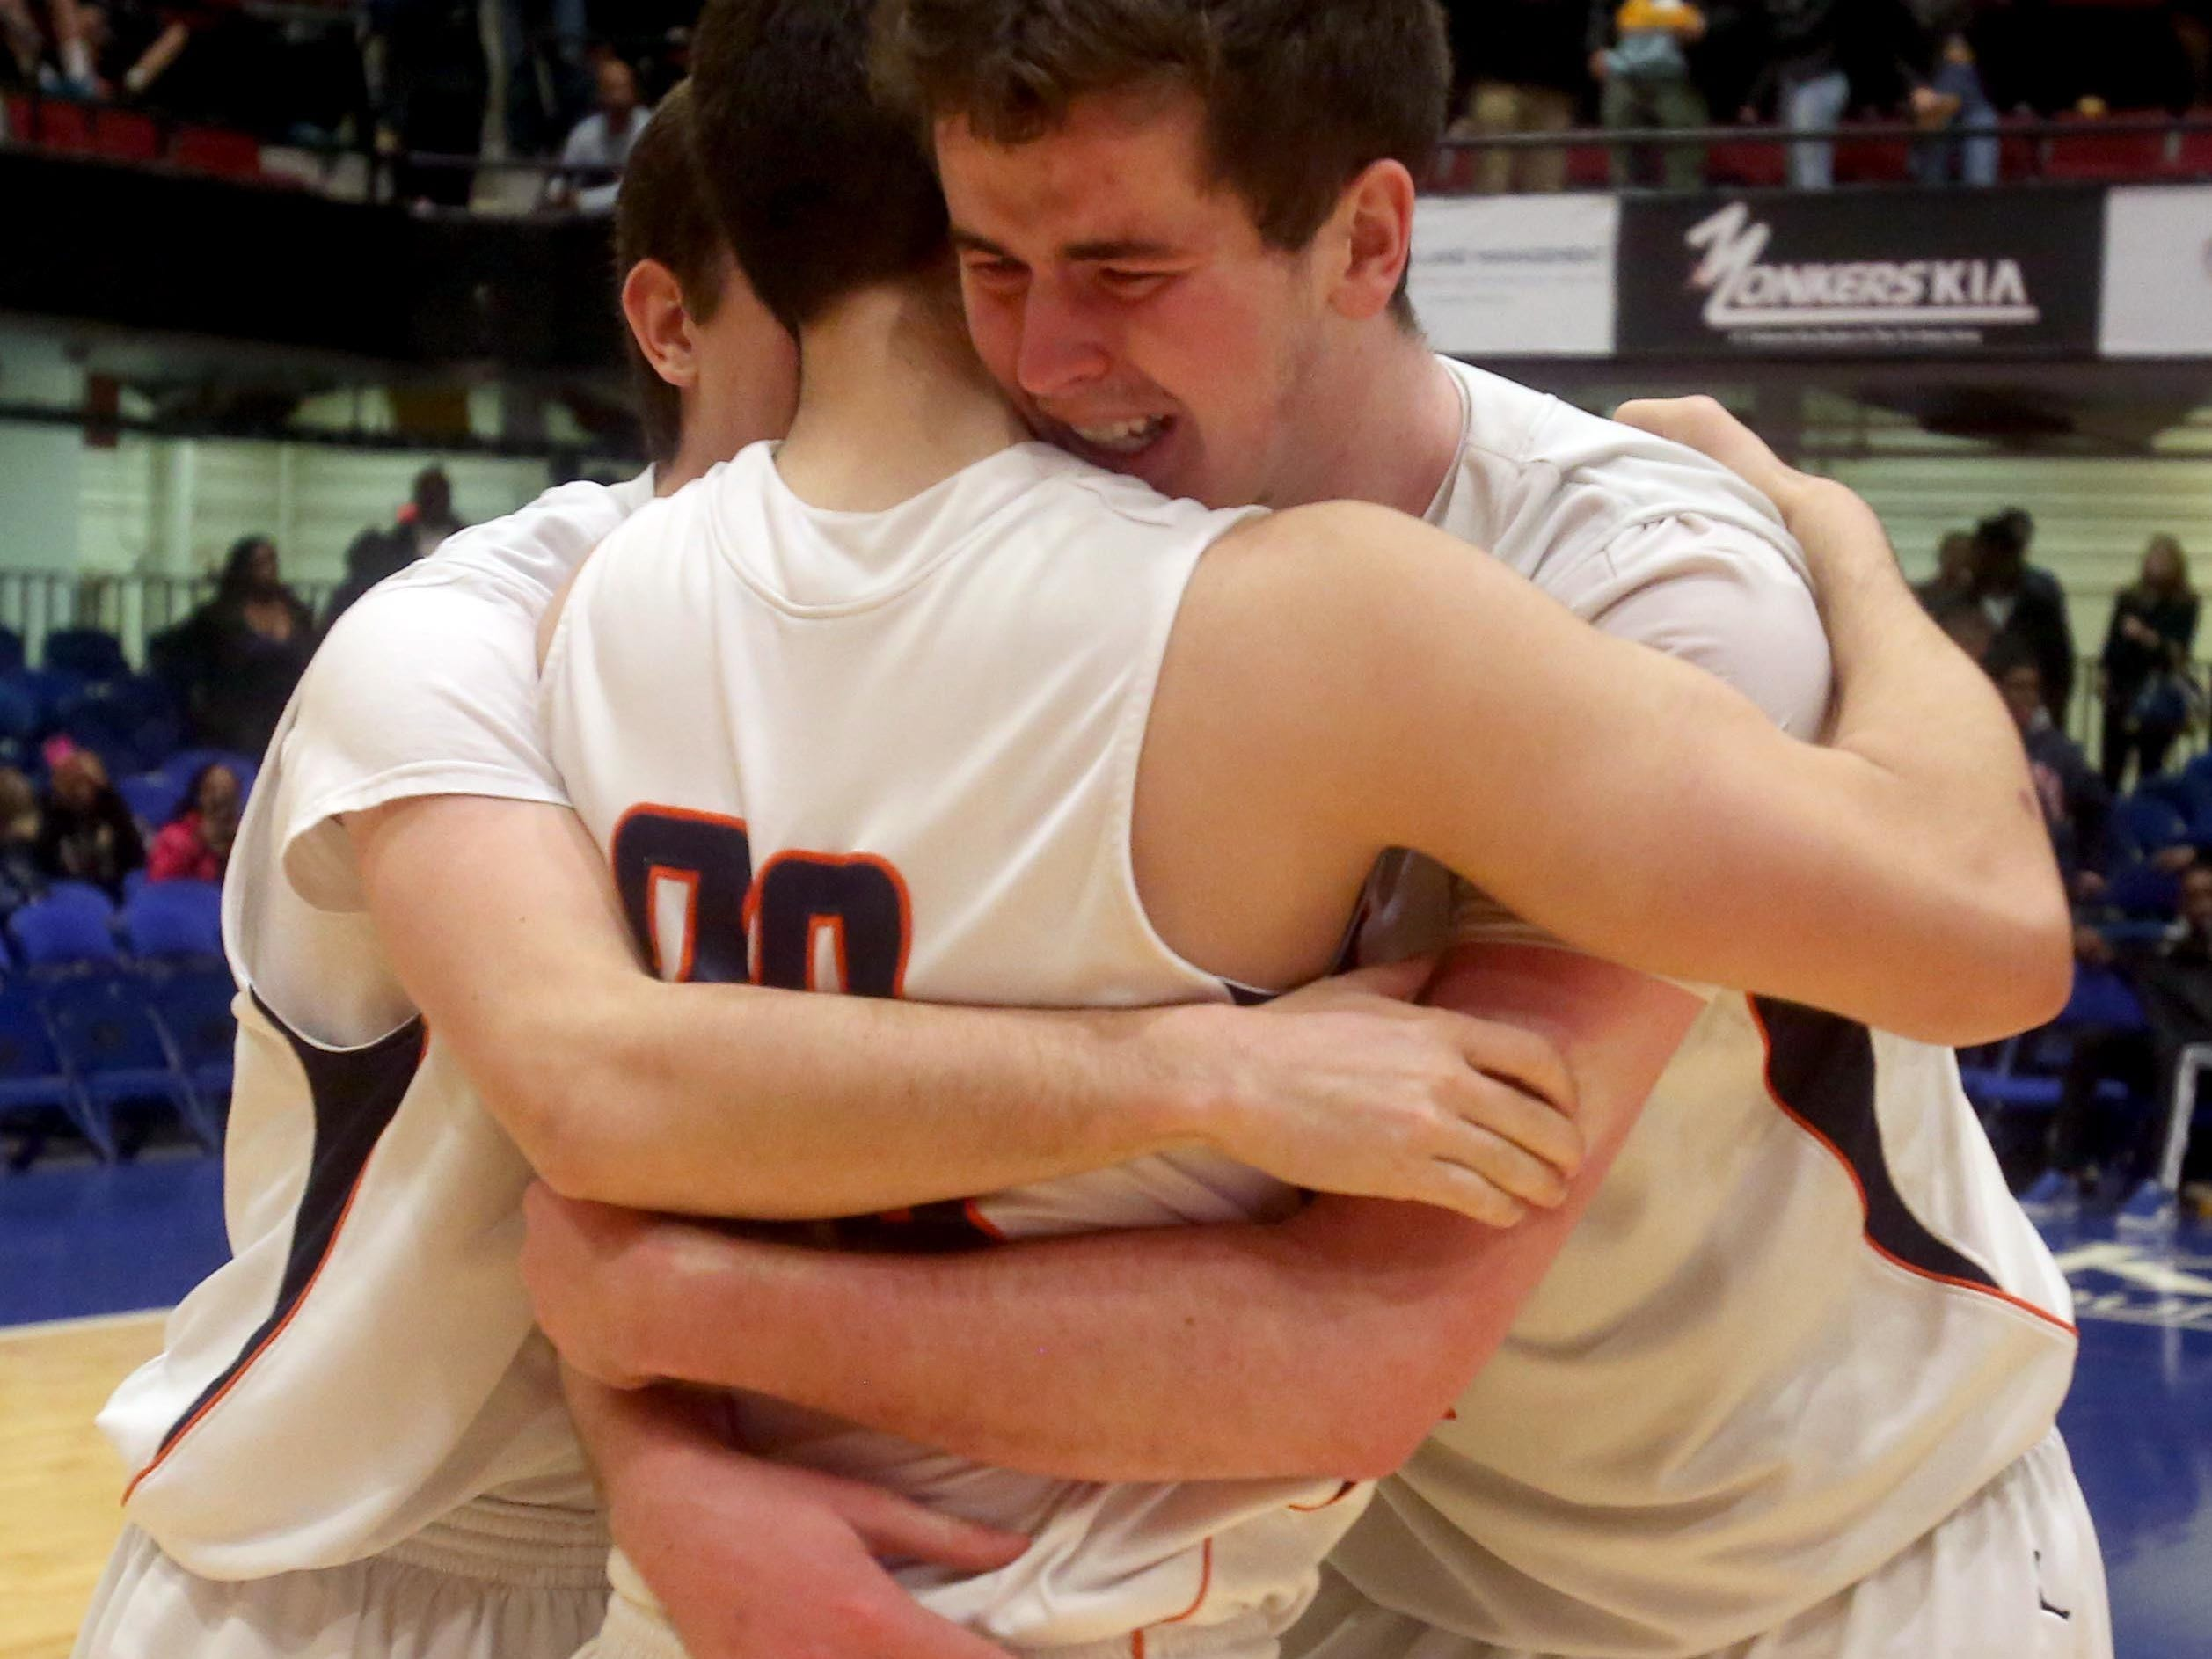 Briarcliff's Sean Crowley, right, celebrates with teammates Joe Canonaco and Nicolas Bennati after Briarcliff defeated Putnam Valley 53-42 to win the Section 1 Class B basketball championship at the Westchester County Center in White Plains Feb. 27, 2016.